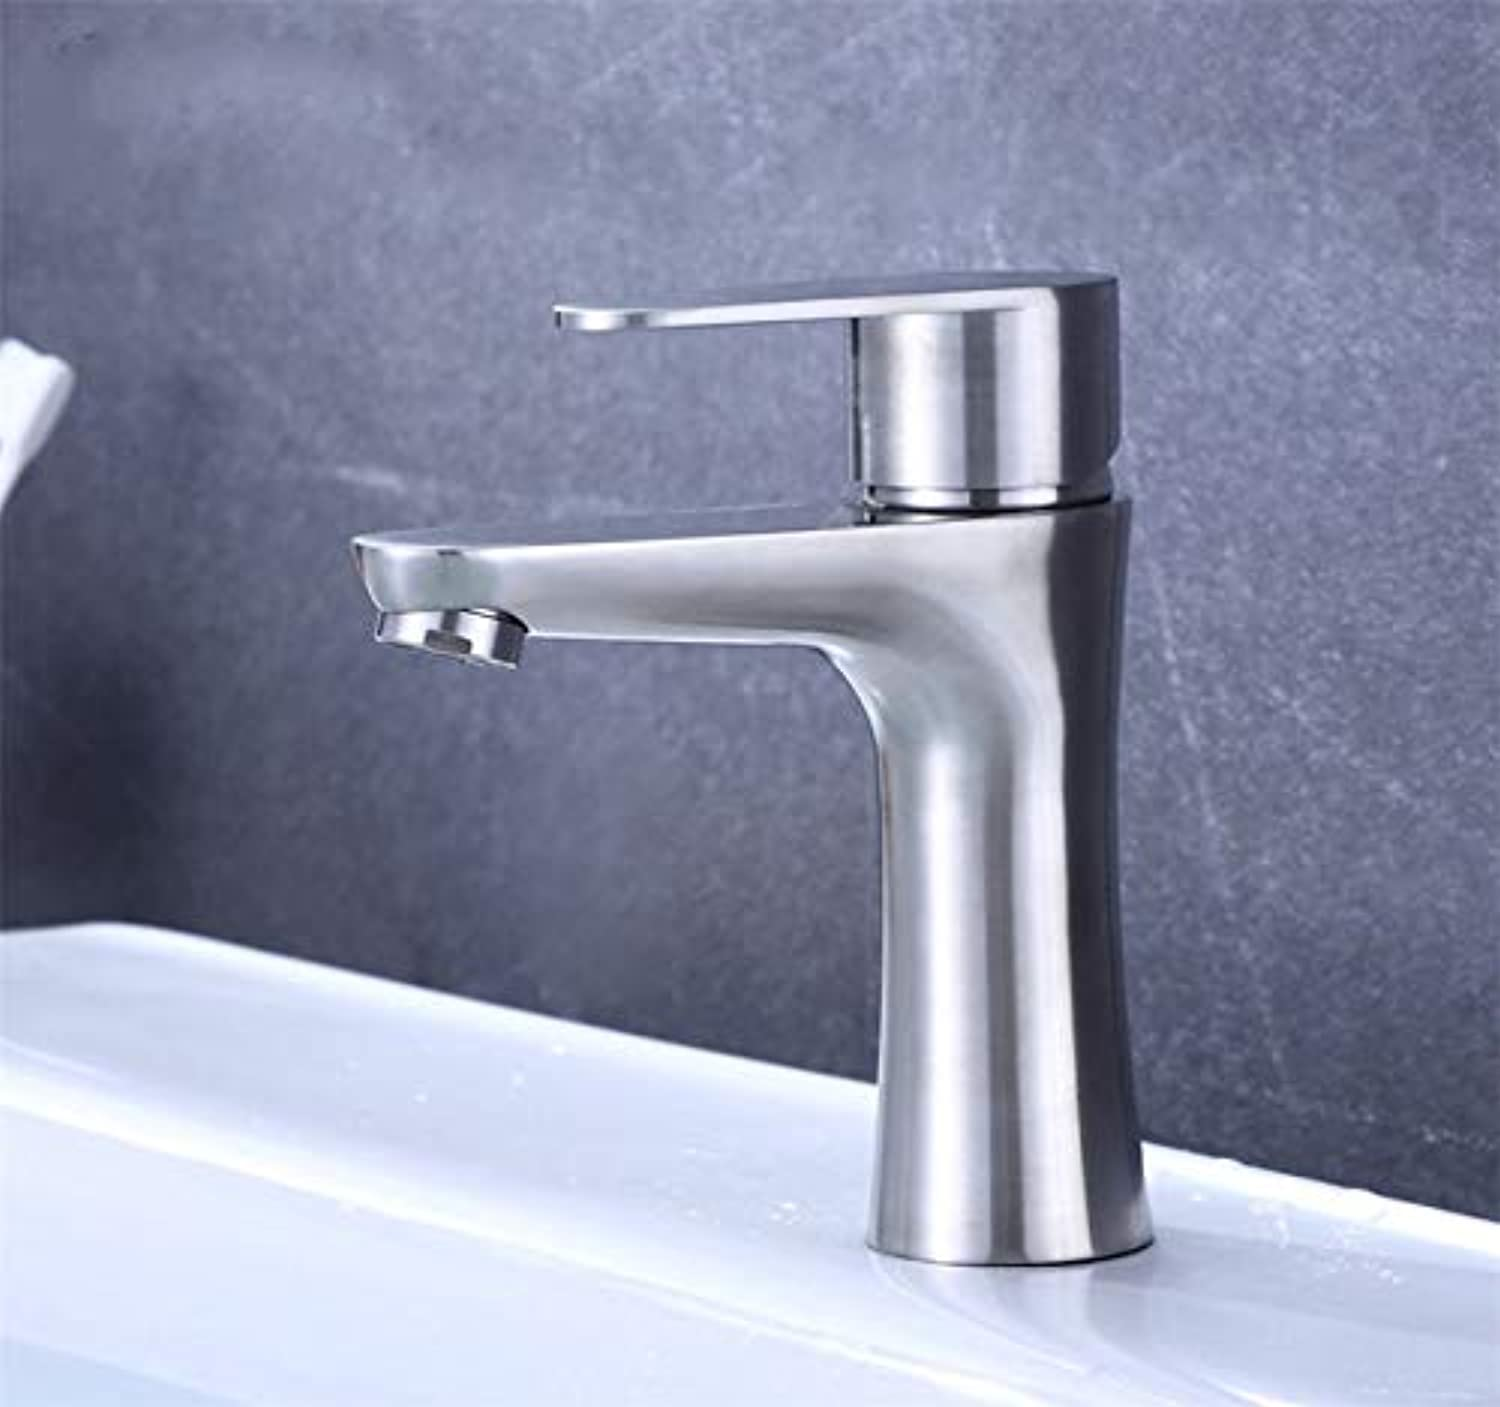 JONTON Faucet faucet faucet, 304 stainless steel???sanitary ware wholesale hot and cold wash basin